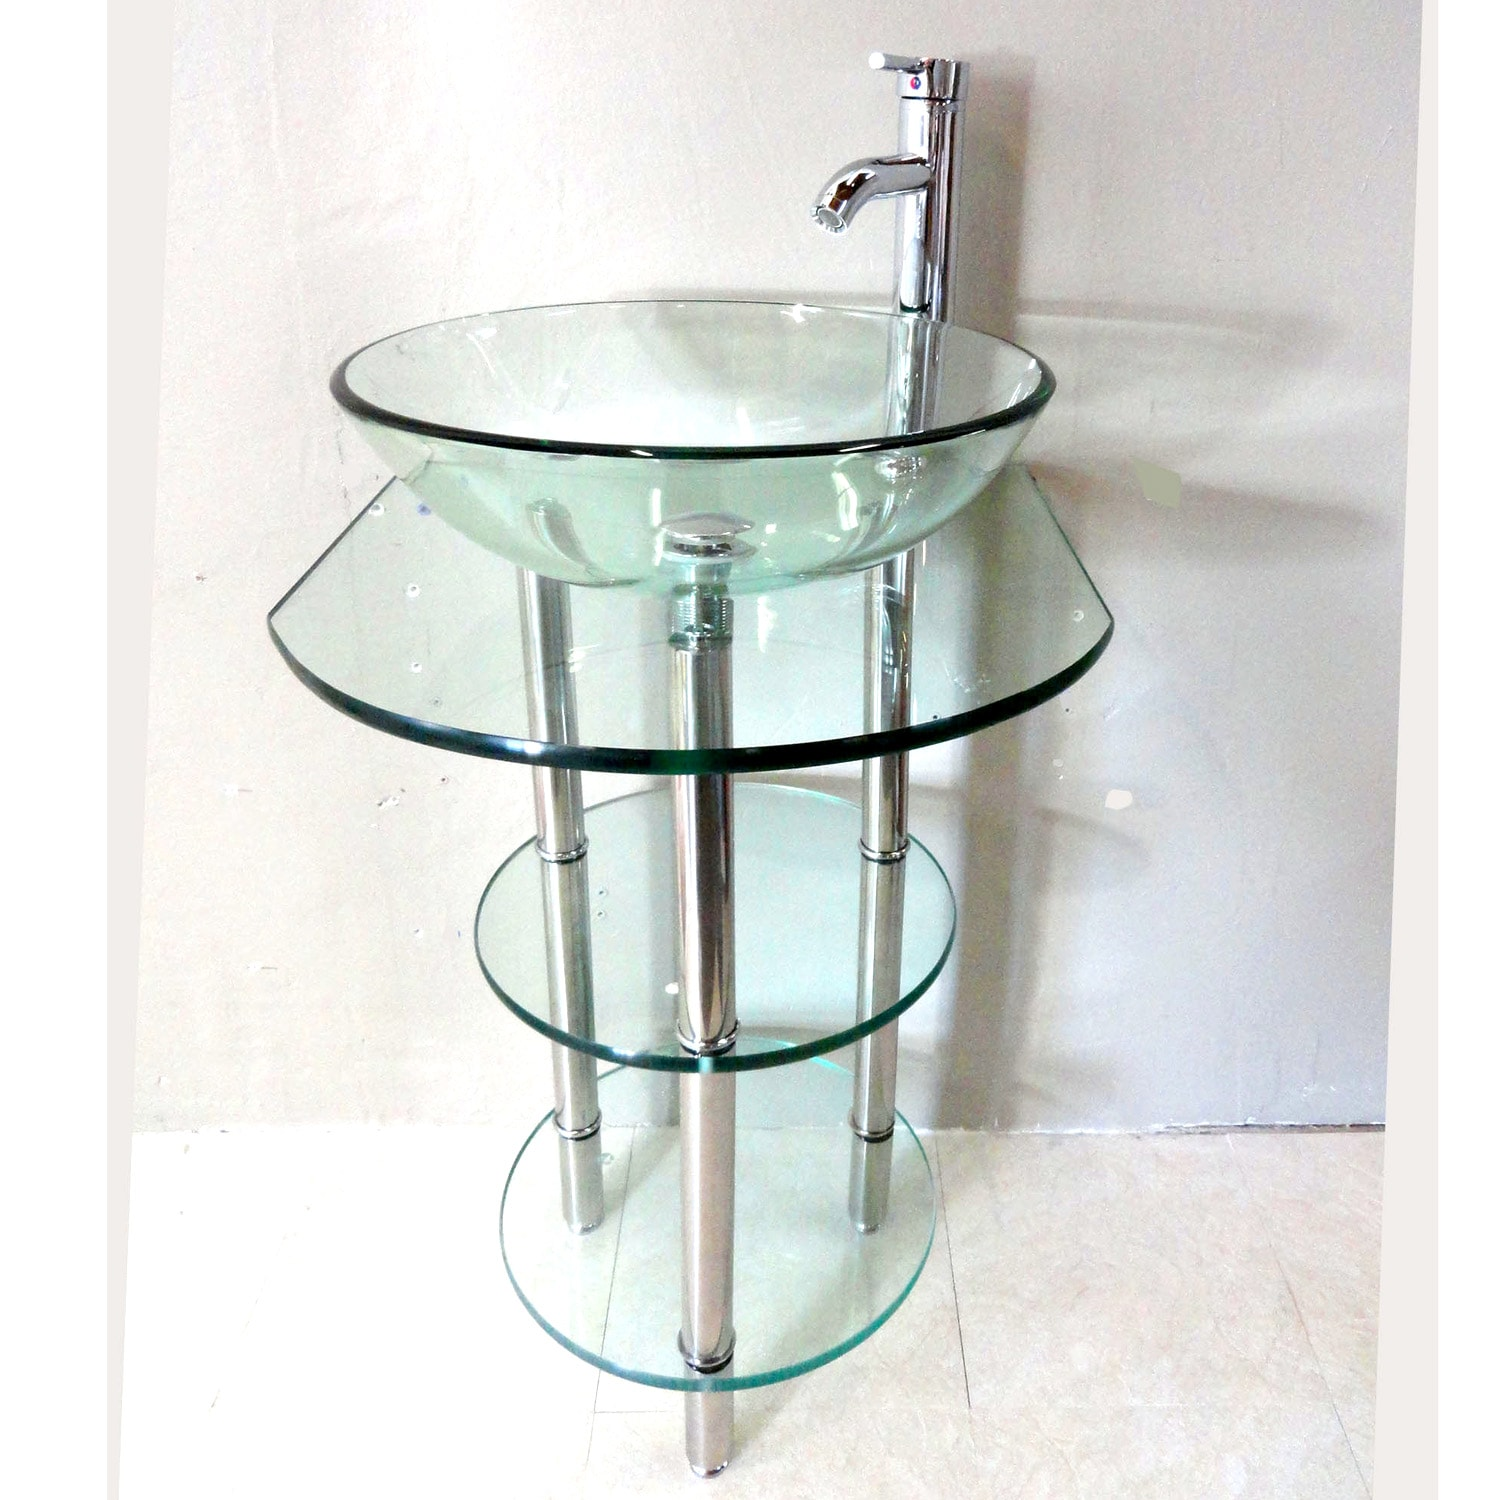 Bathroom Vanity Pedestal: Shop Clear Tempered Glass Pedestal Vanity And Sink Combo